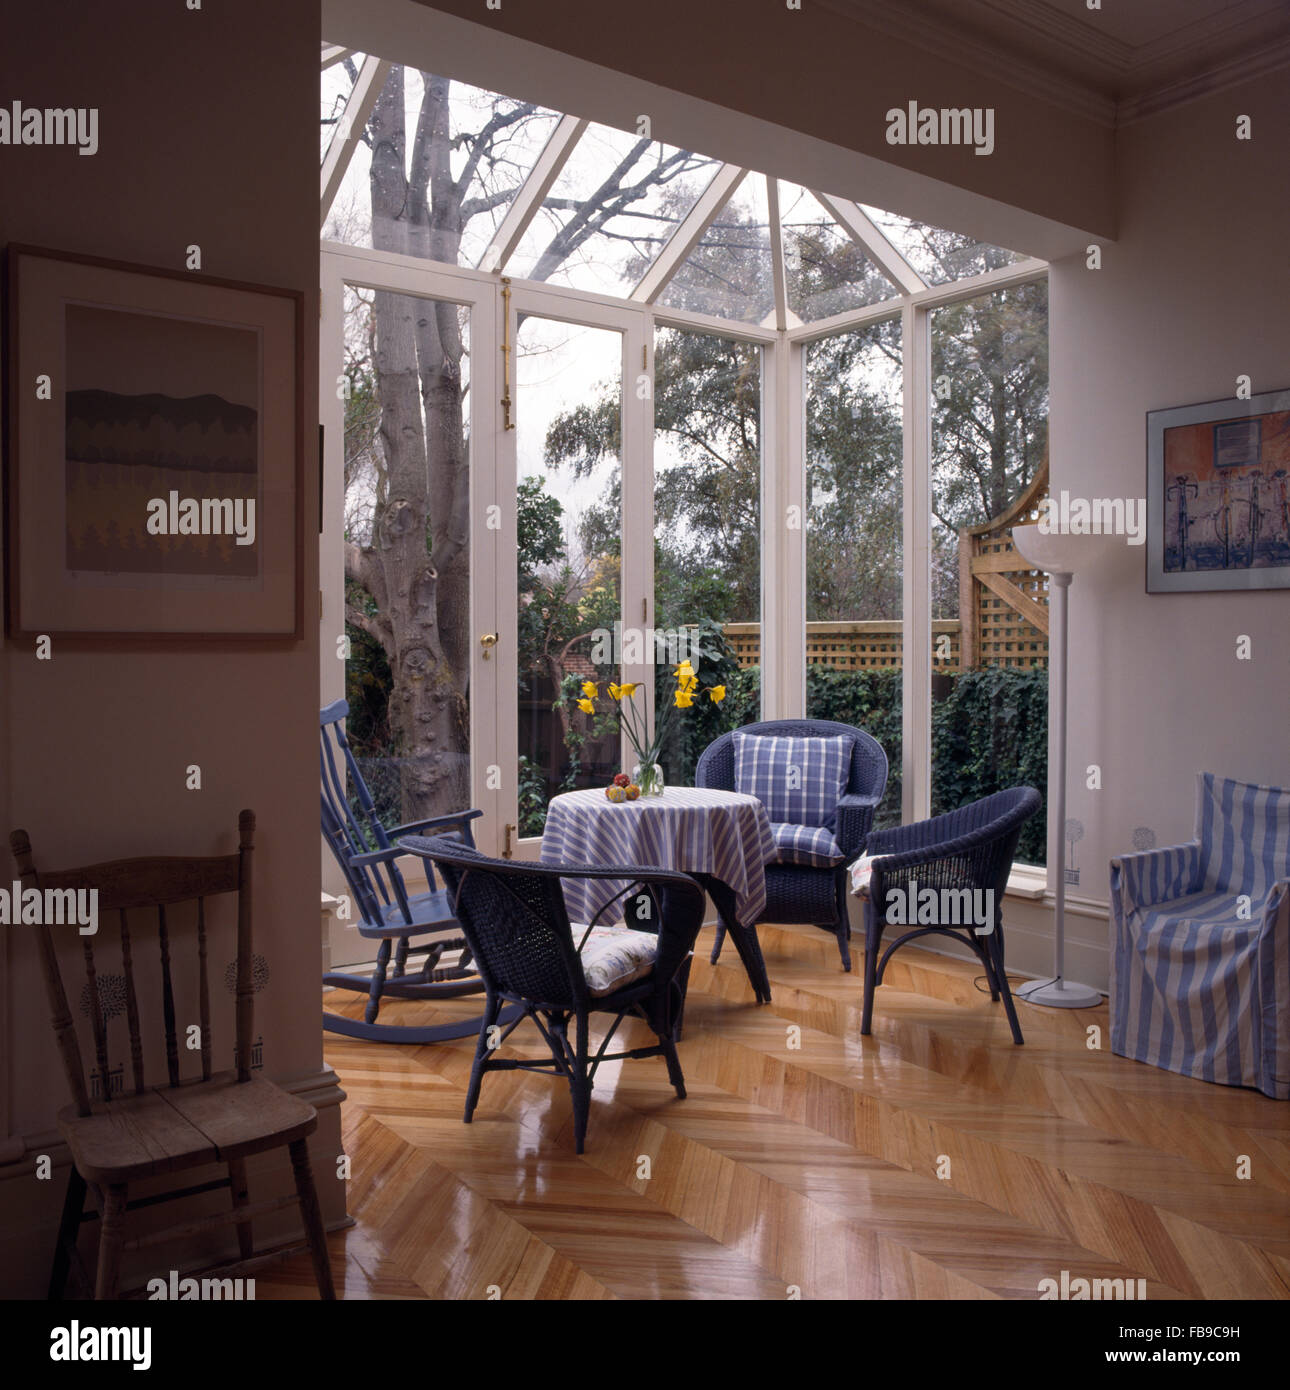 Parquet flooring and wicker chairs in an open plan, glass extension dining room - Stock Image